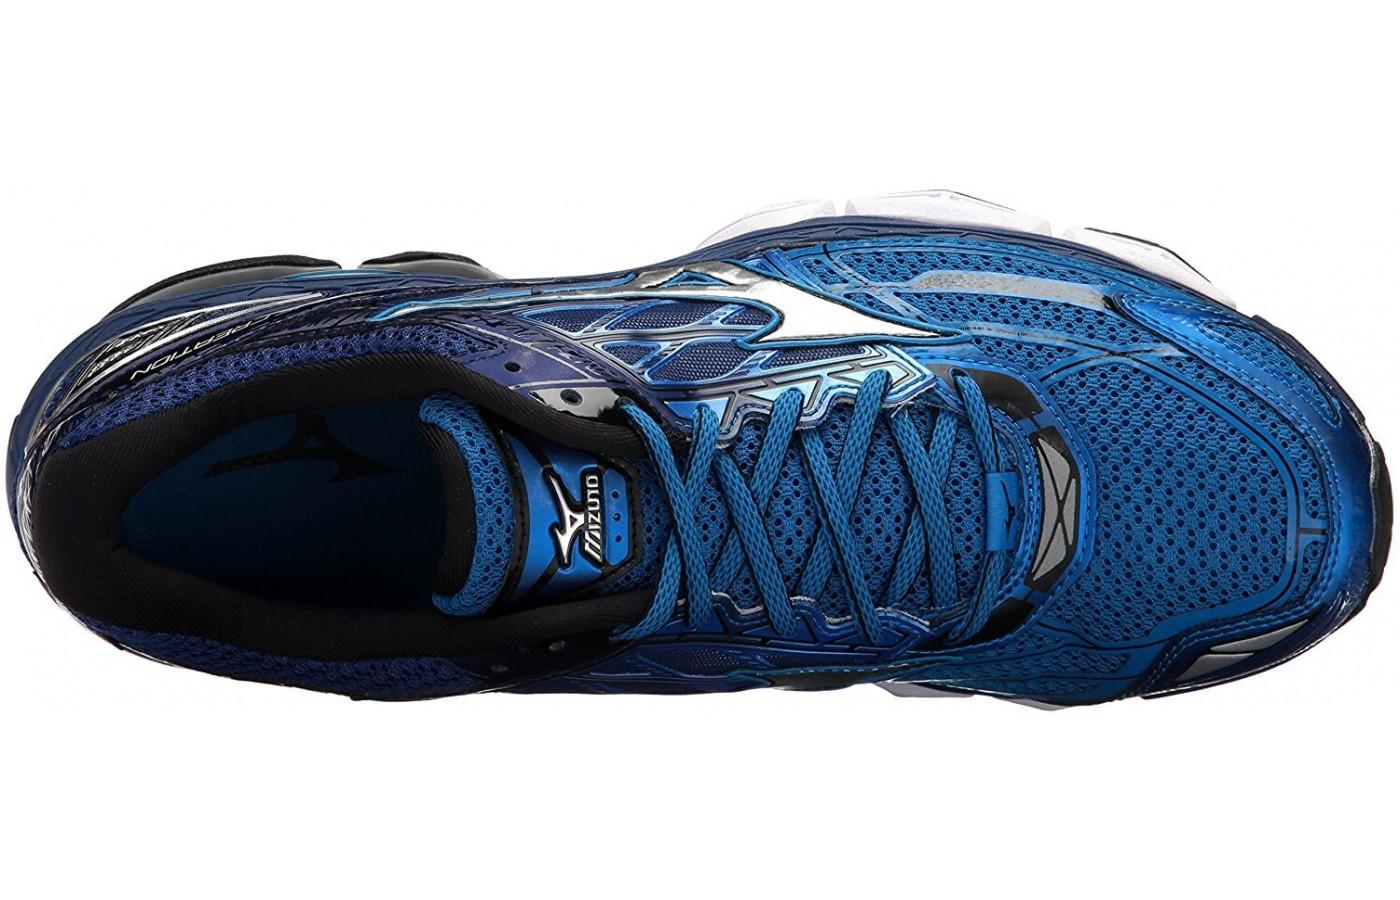 The Mizunoe Wave Creation 19 features a moisture wicking, removable anatomic sockliner